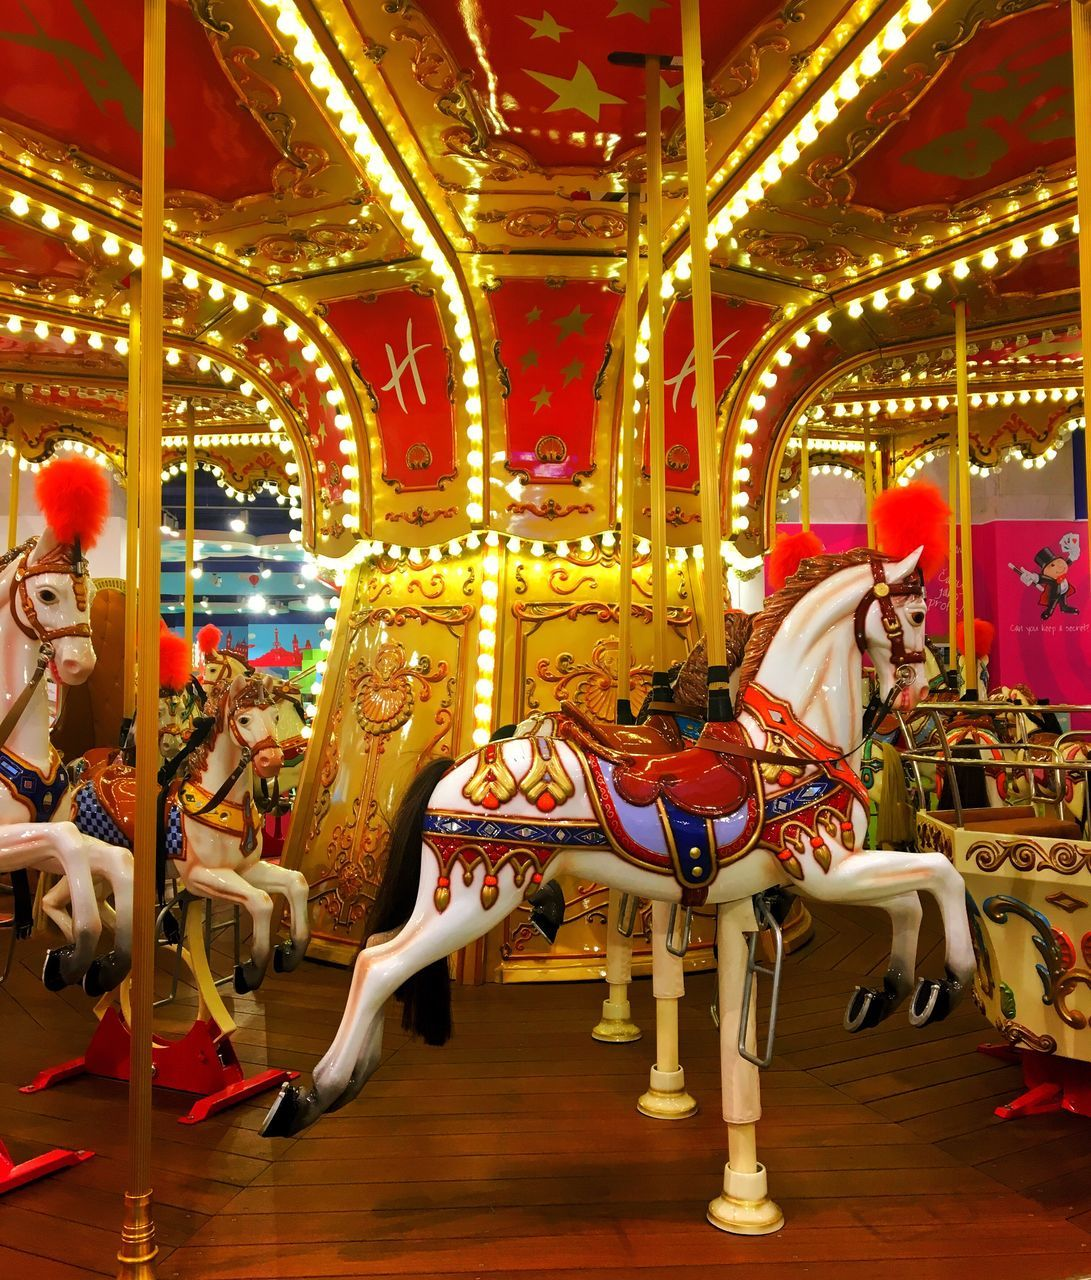 arts culture and entertainment, amusement park, carousel, carousel horses, amusement park ride, horse, leisure activity, animal representation, enjoyment, fairground ride, recreational pursuit, merry-go-round, fun, illuminated, side view, turning, night, excitement, childhood, no people, multi colored